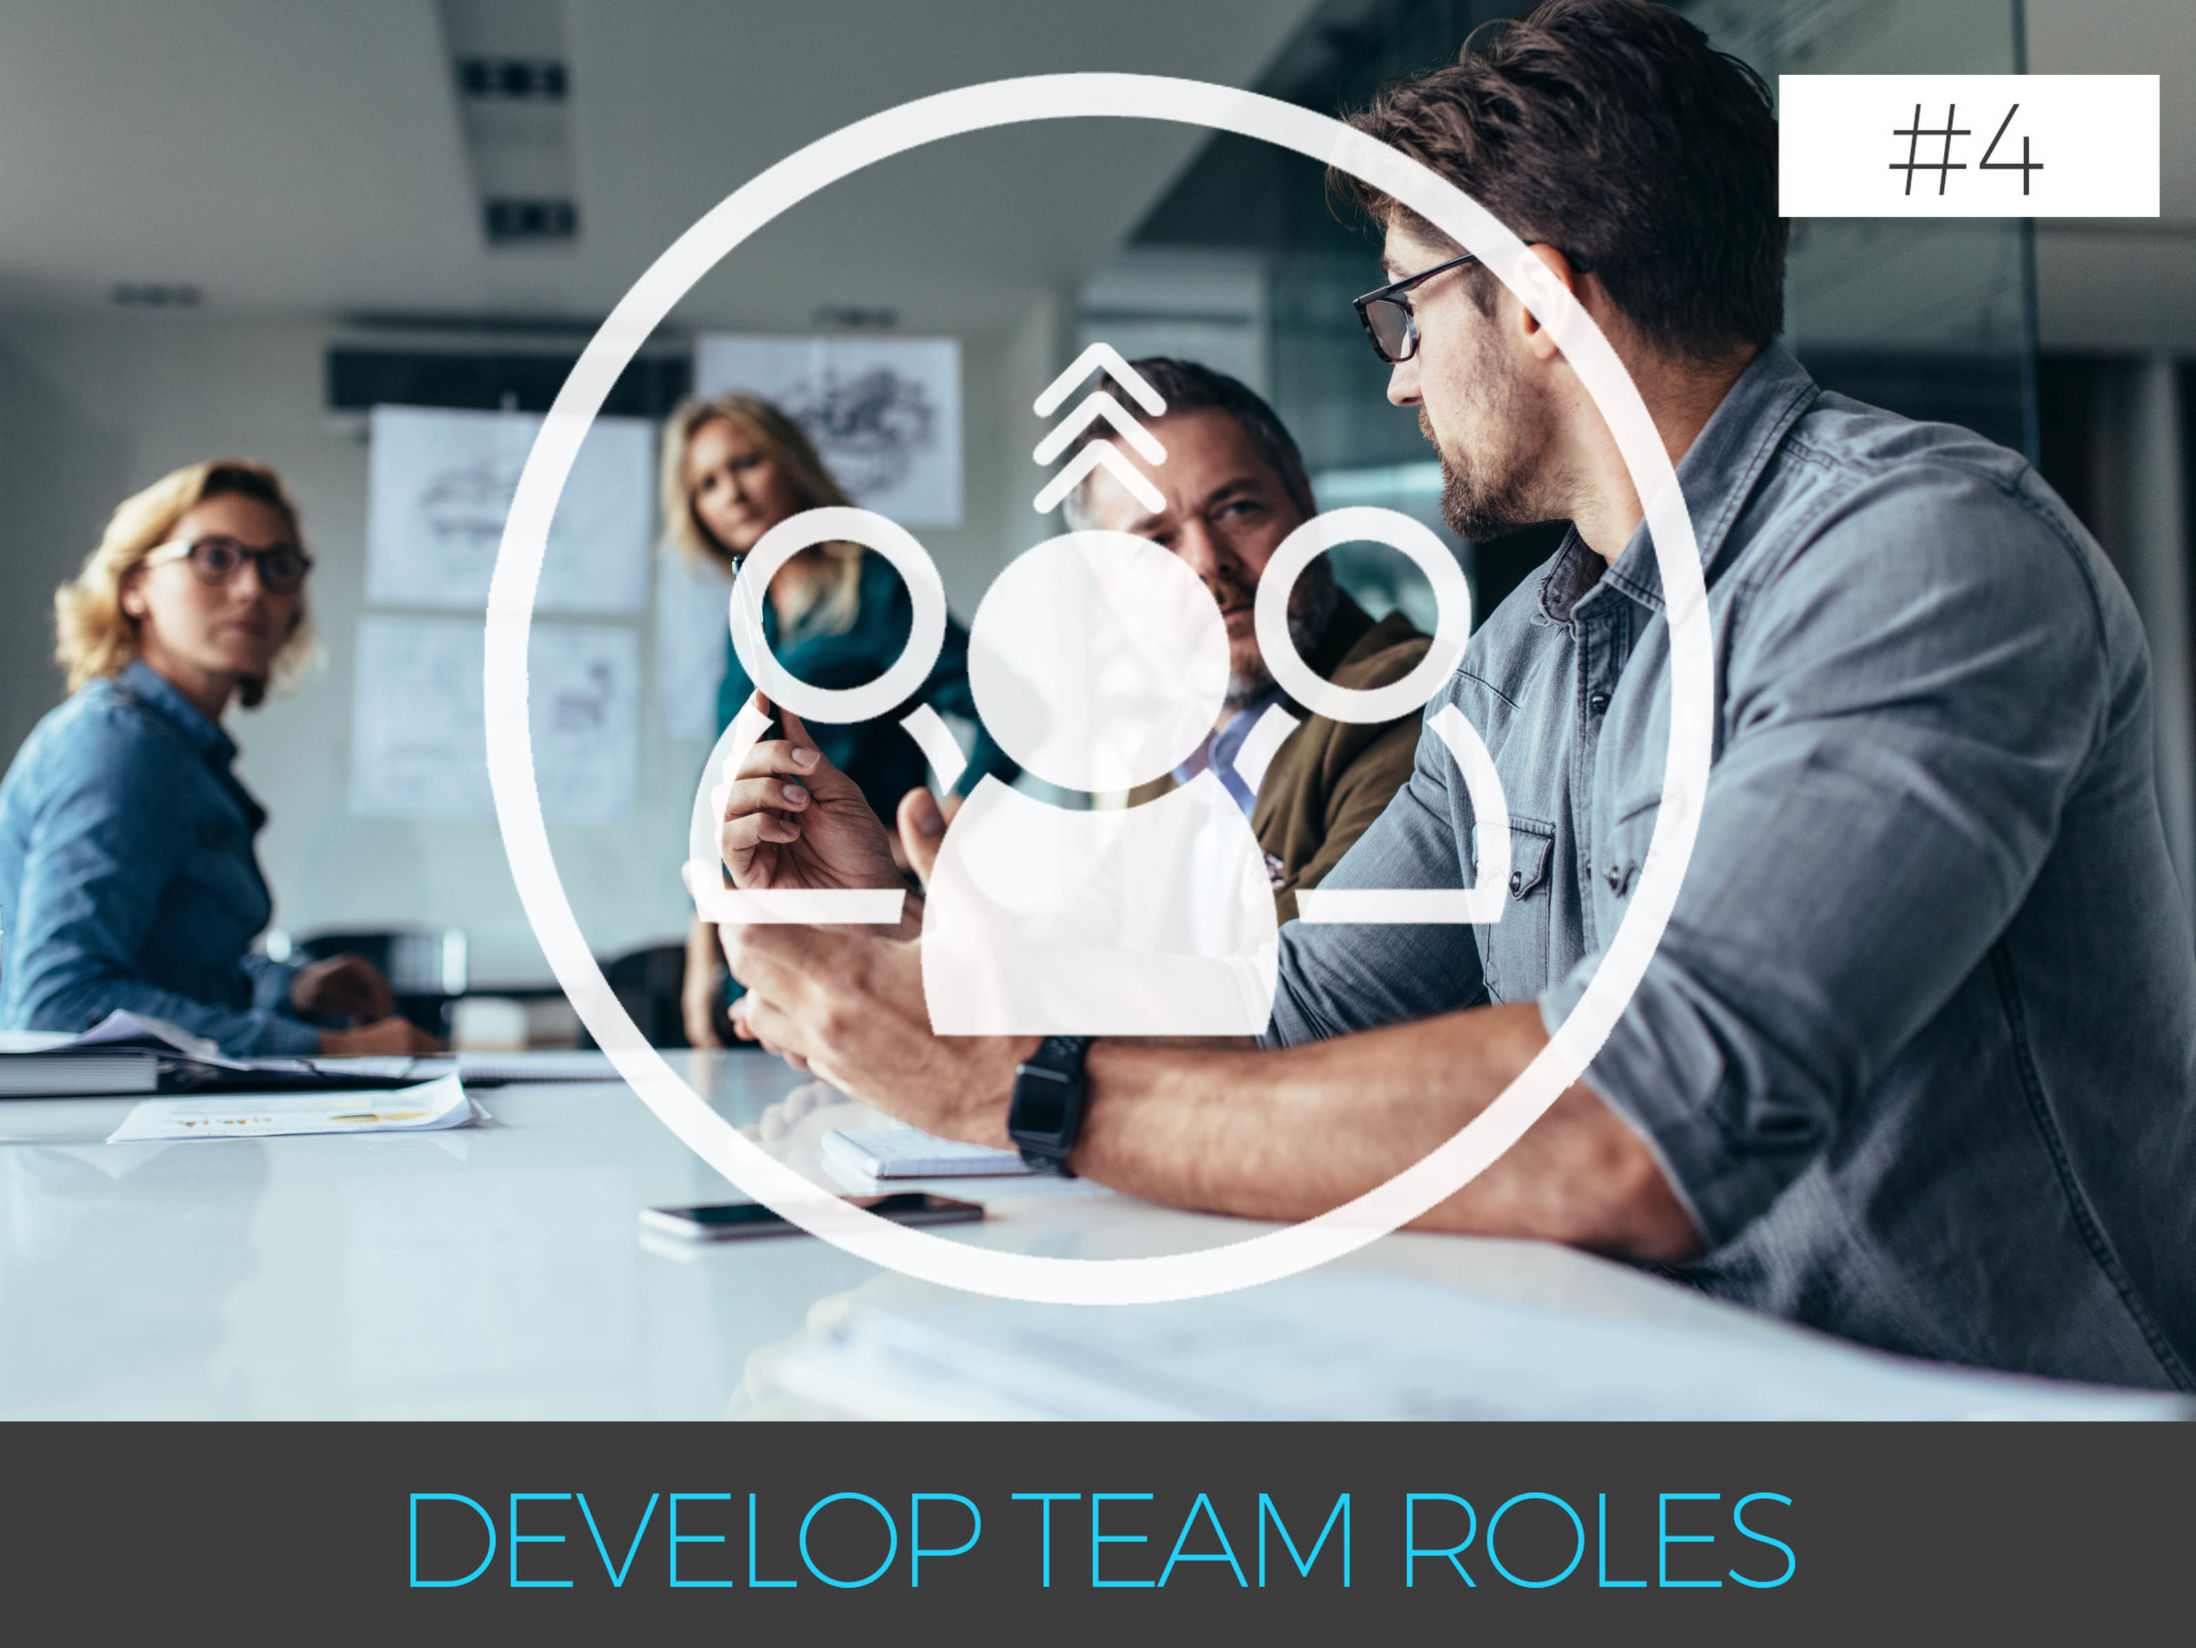 Why is Team Building so Important - 4. Develop Team Roles